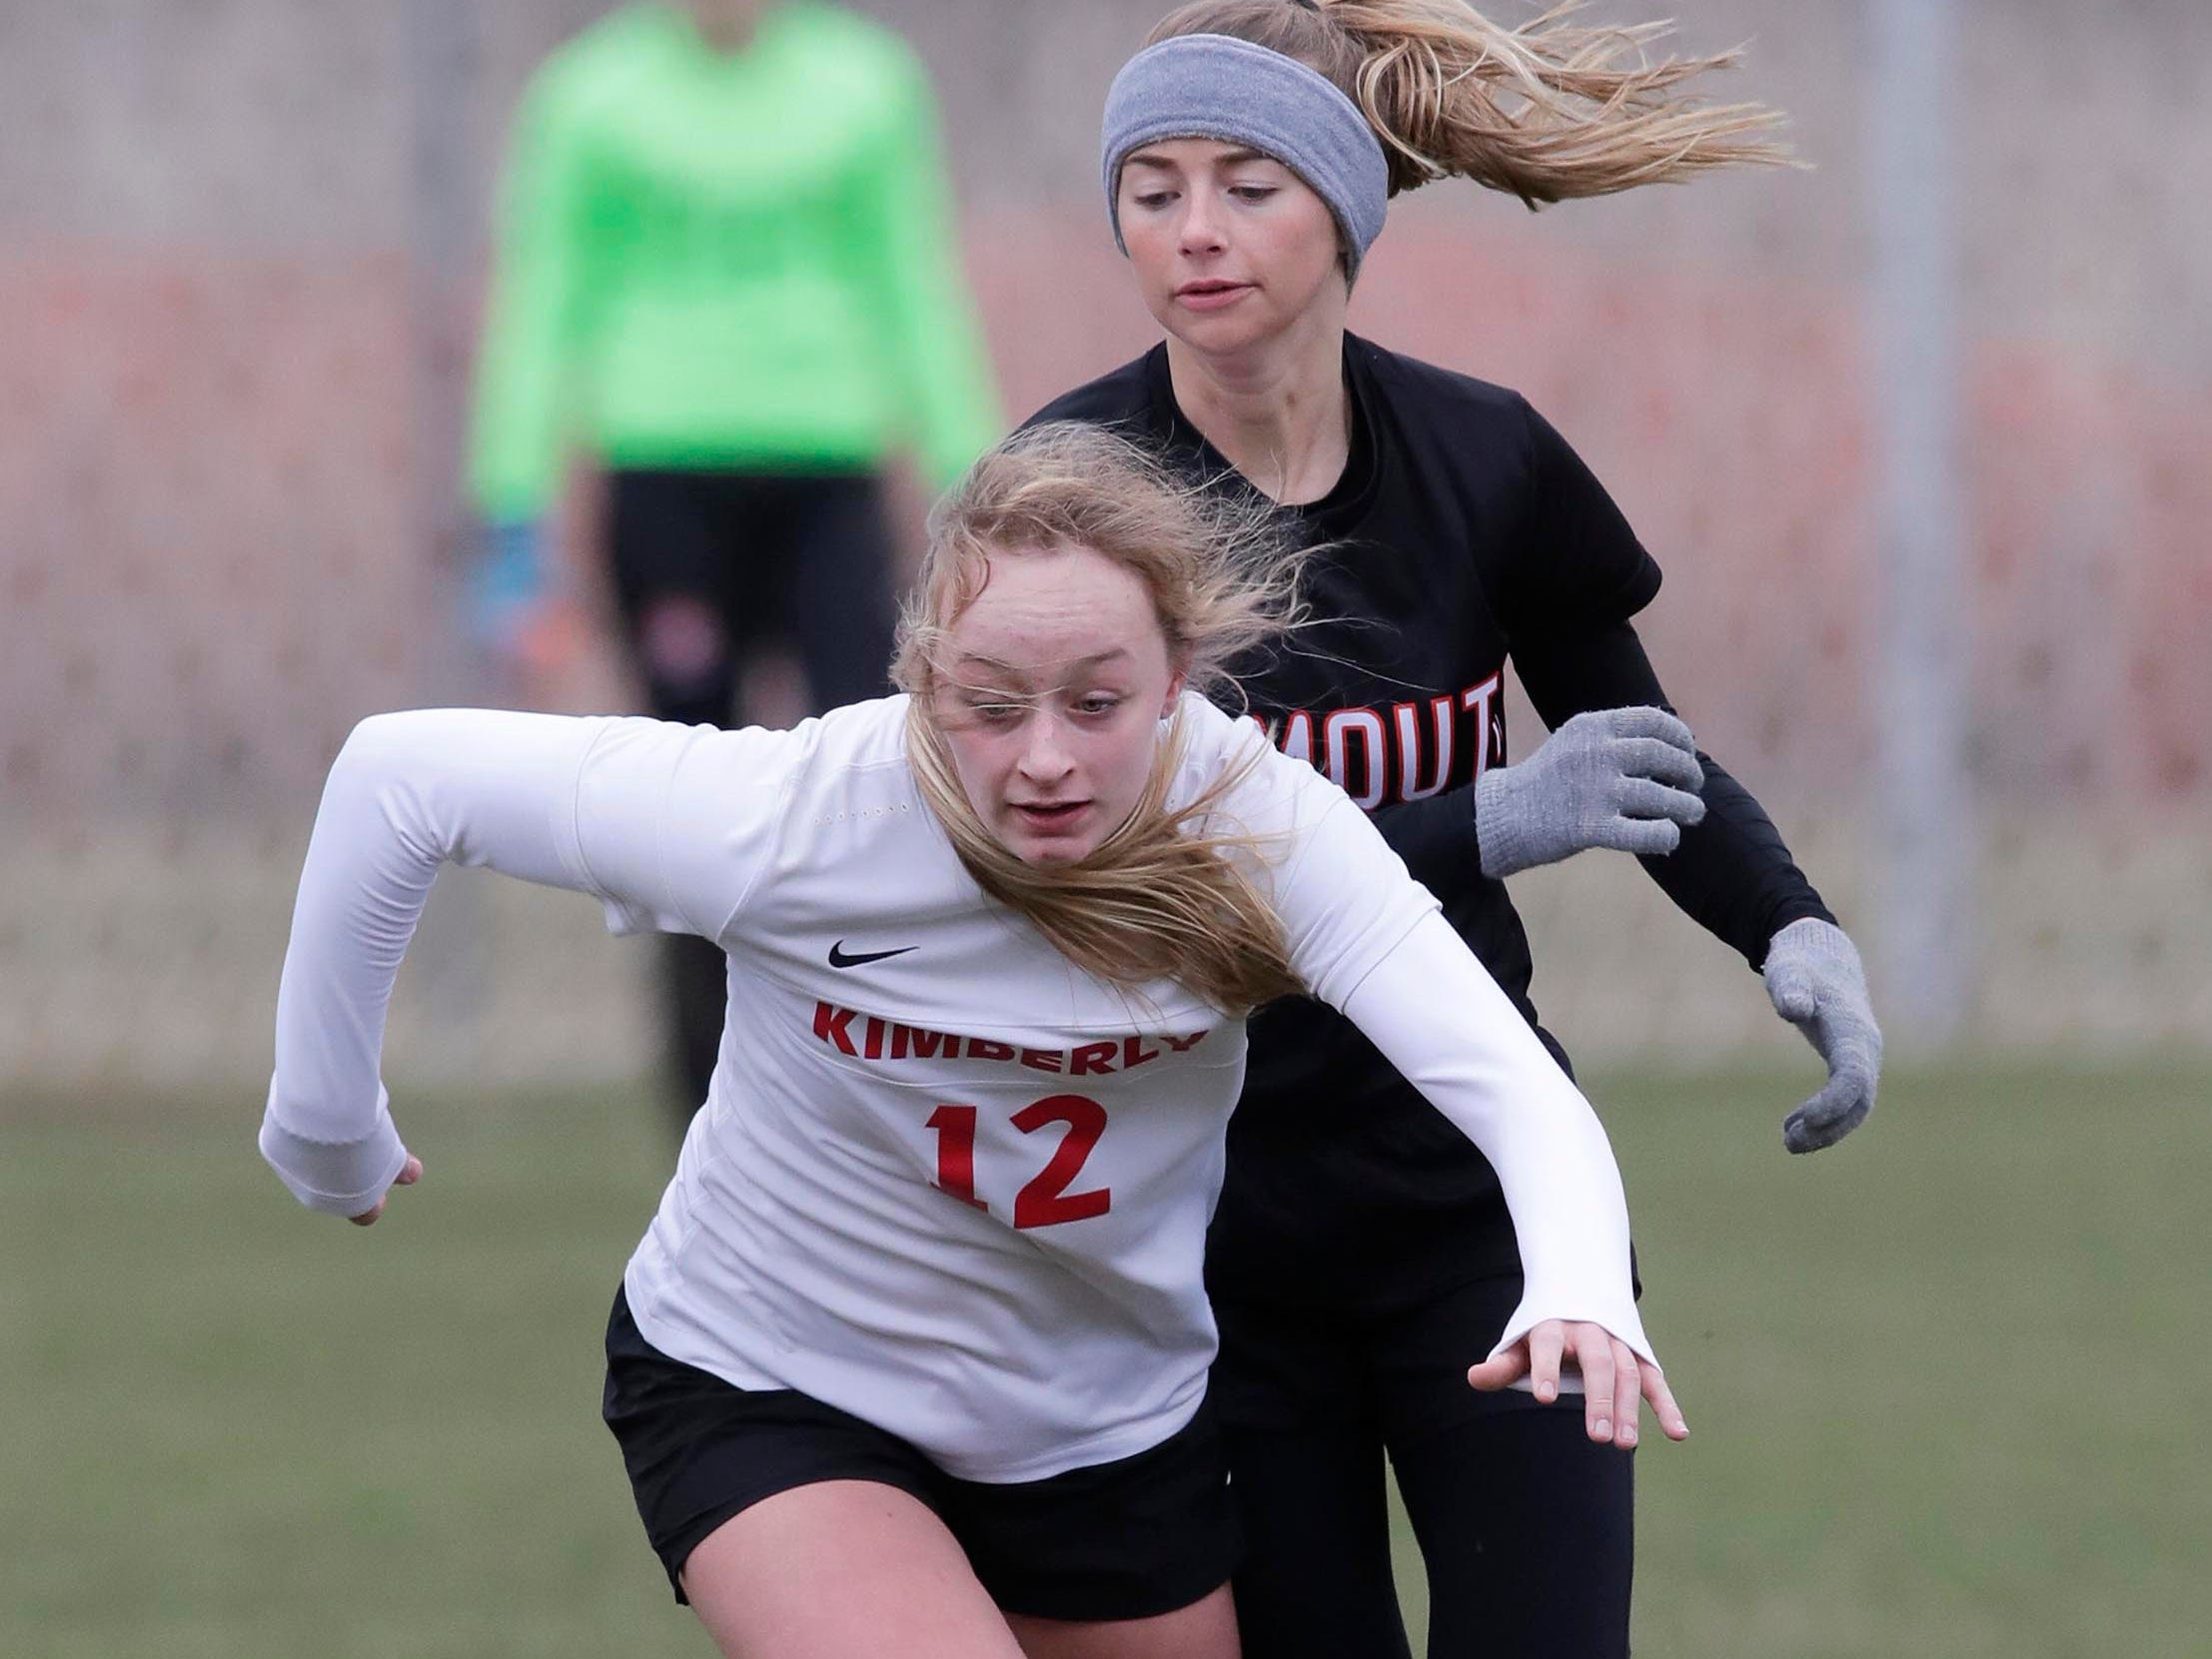 Kimberly's Lauryn Hull (12) runs to the ball against Plymouth, Saturday, April 13, 2019, in Plymouth, Wis.